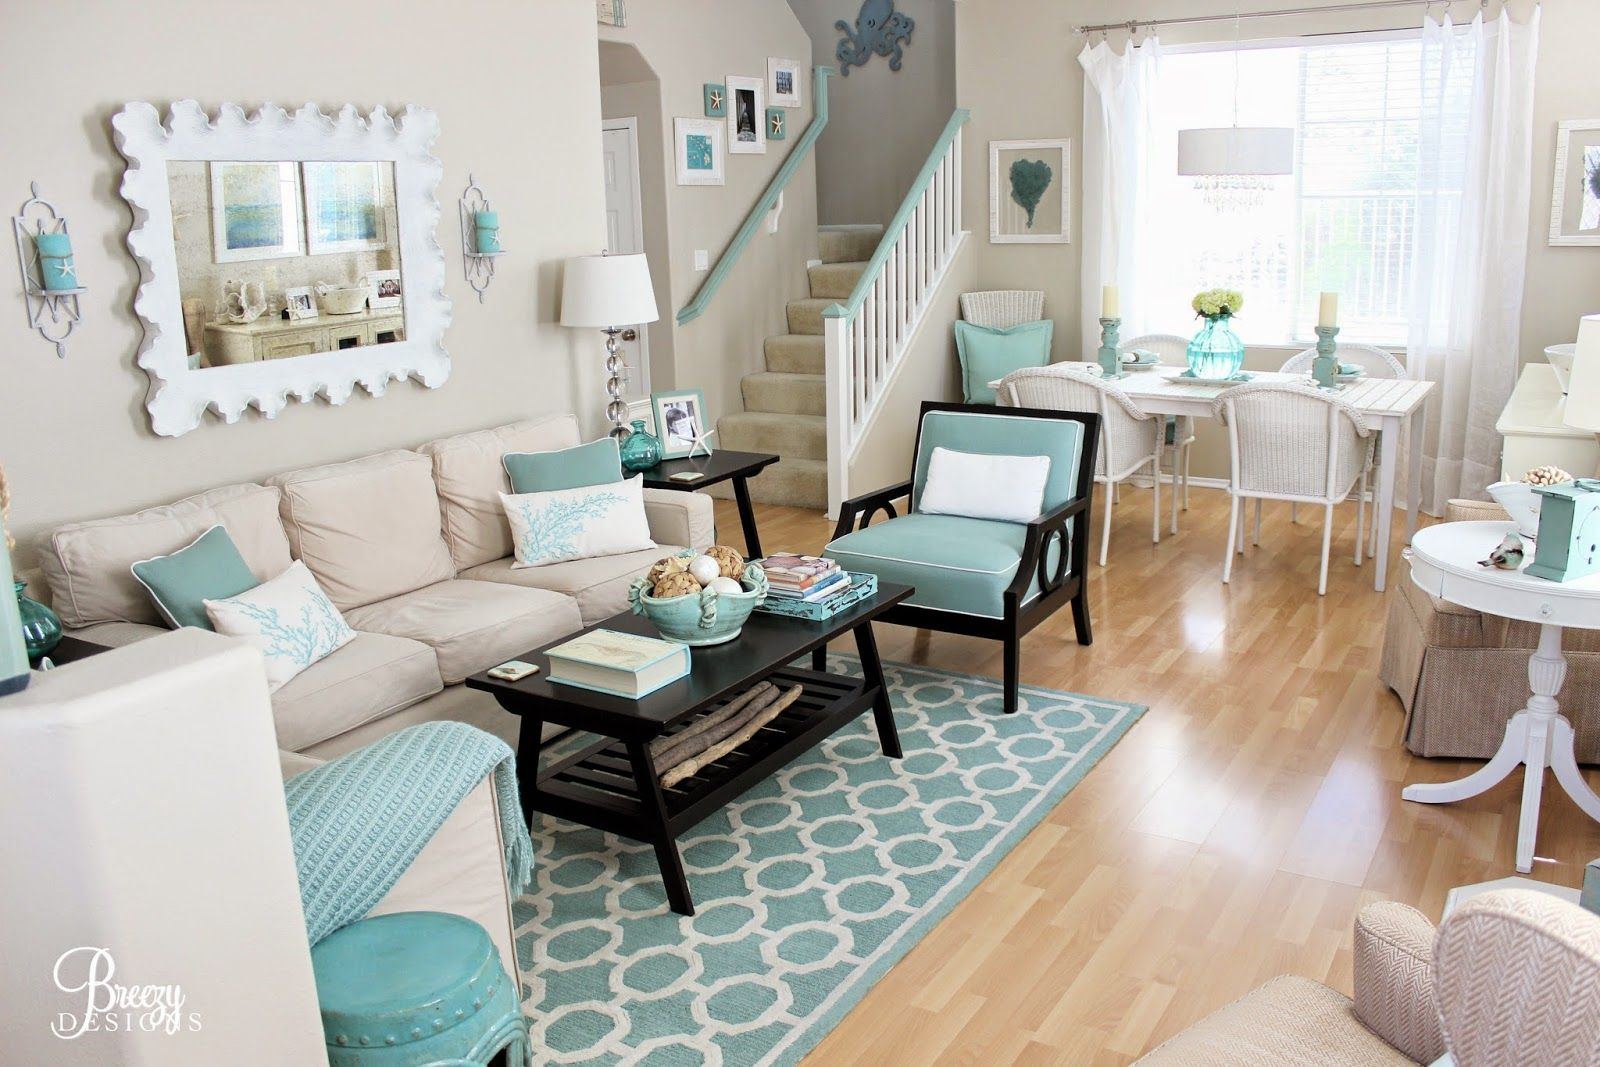 House Of Turquoise Living Room Fair Guest Blogger Breezy From Breezy Designs House Of Turquoise . Inspiration